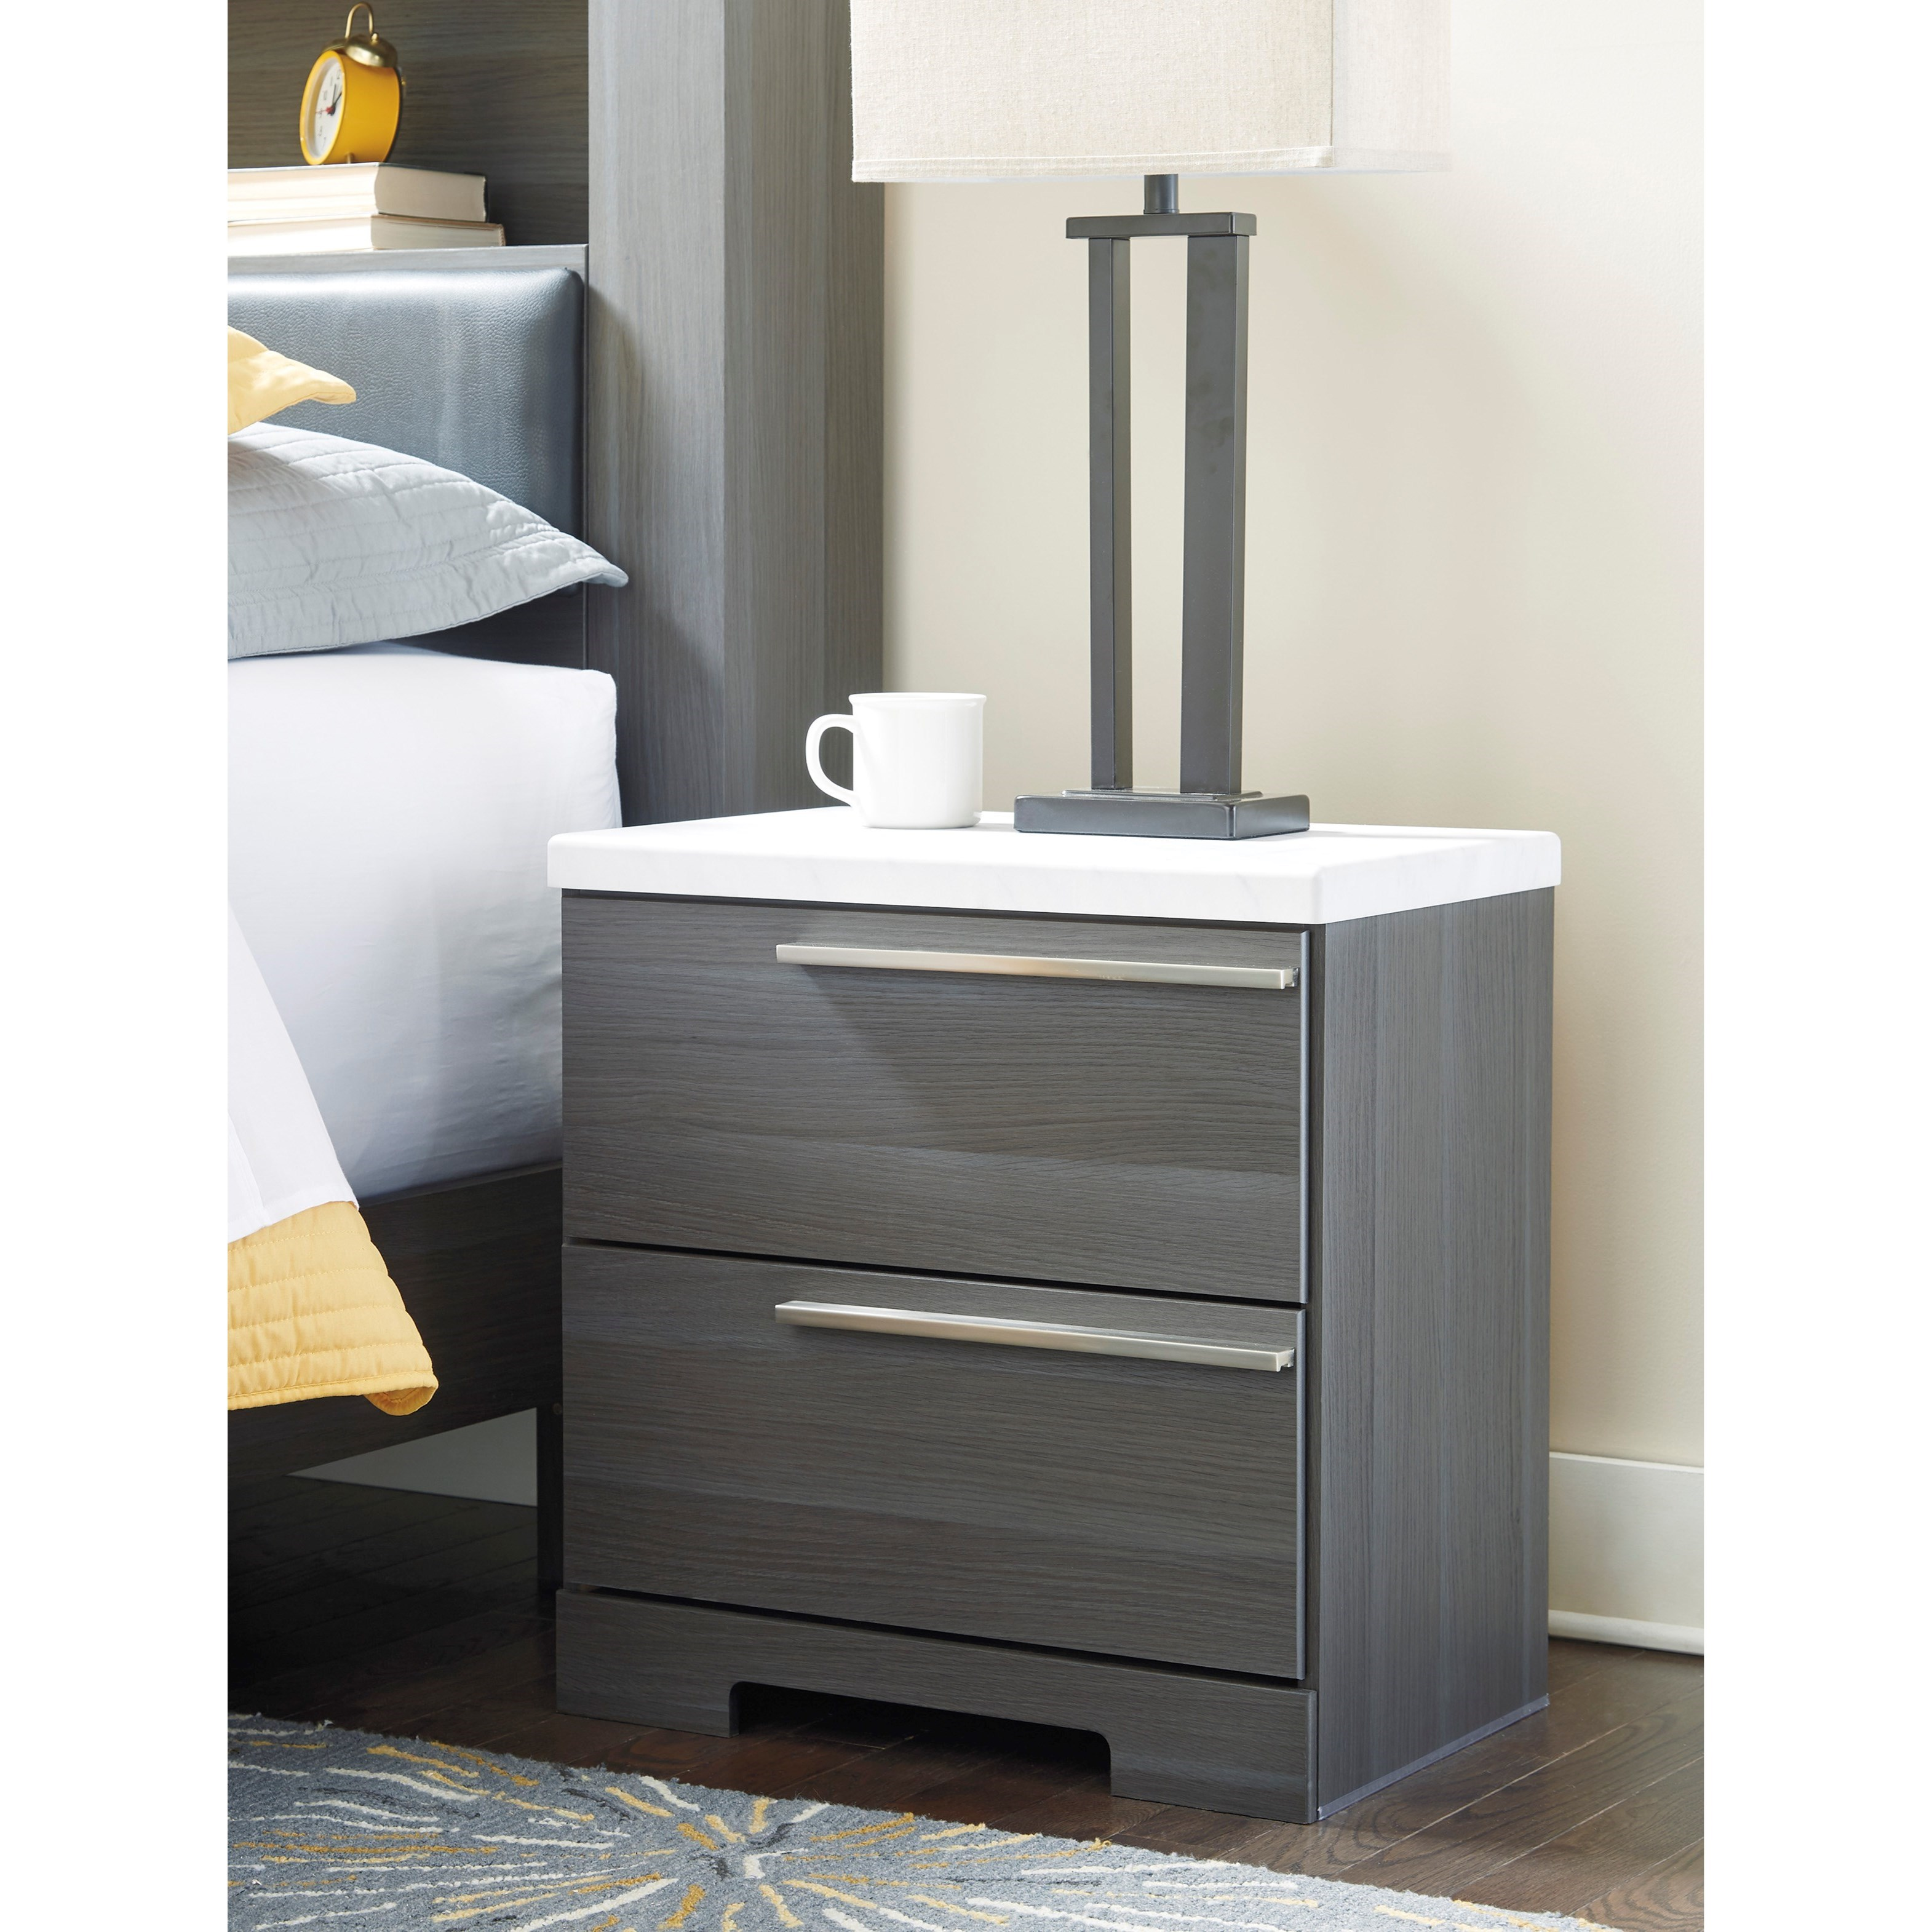 Ashley Furniture Serial Number Lookup Model Search Office: Signature Design By Ashley Foxvale Two Drawer Nightstand